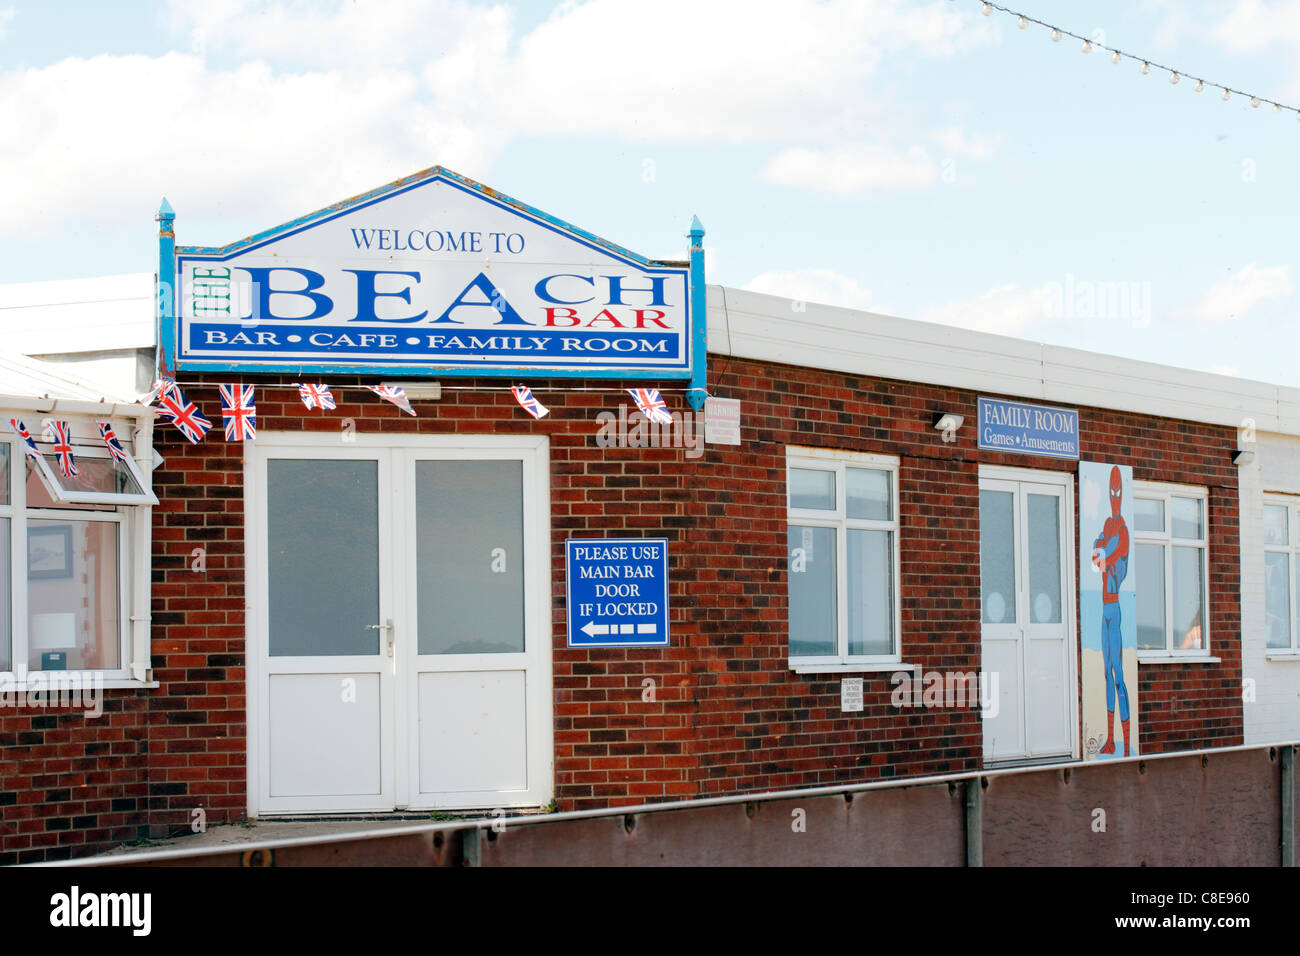 The beach at Sutton-on-Sea. Welcome to the beach bar café family room - Stock Image